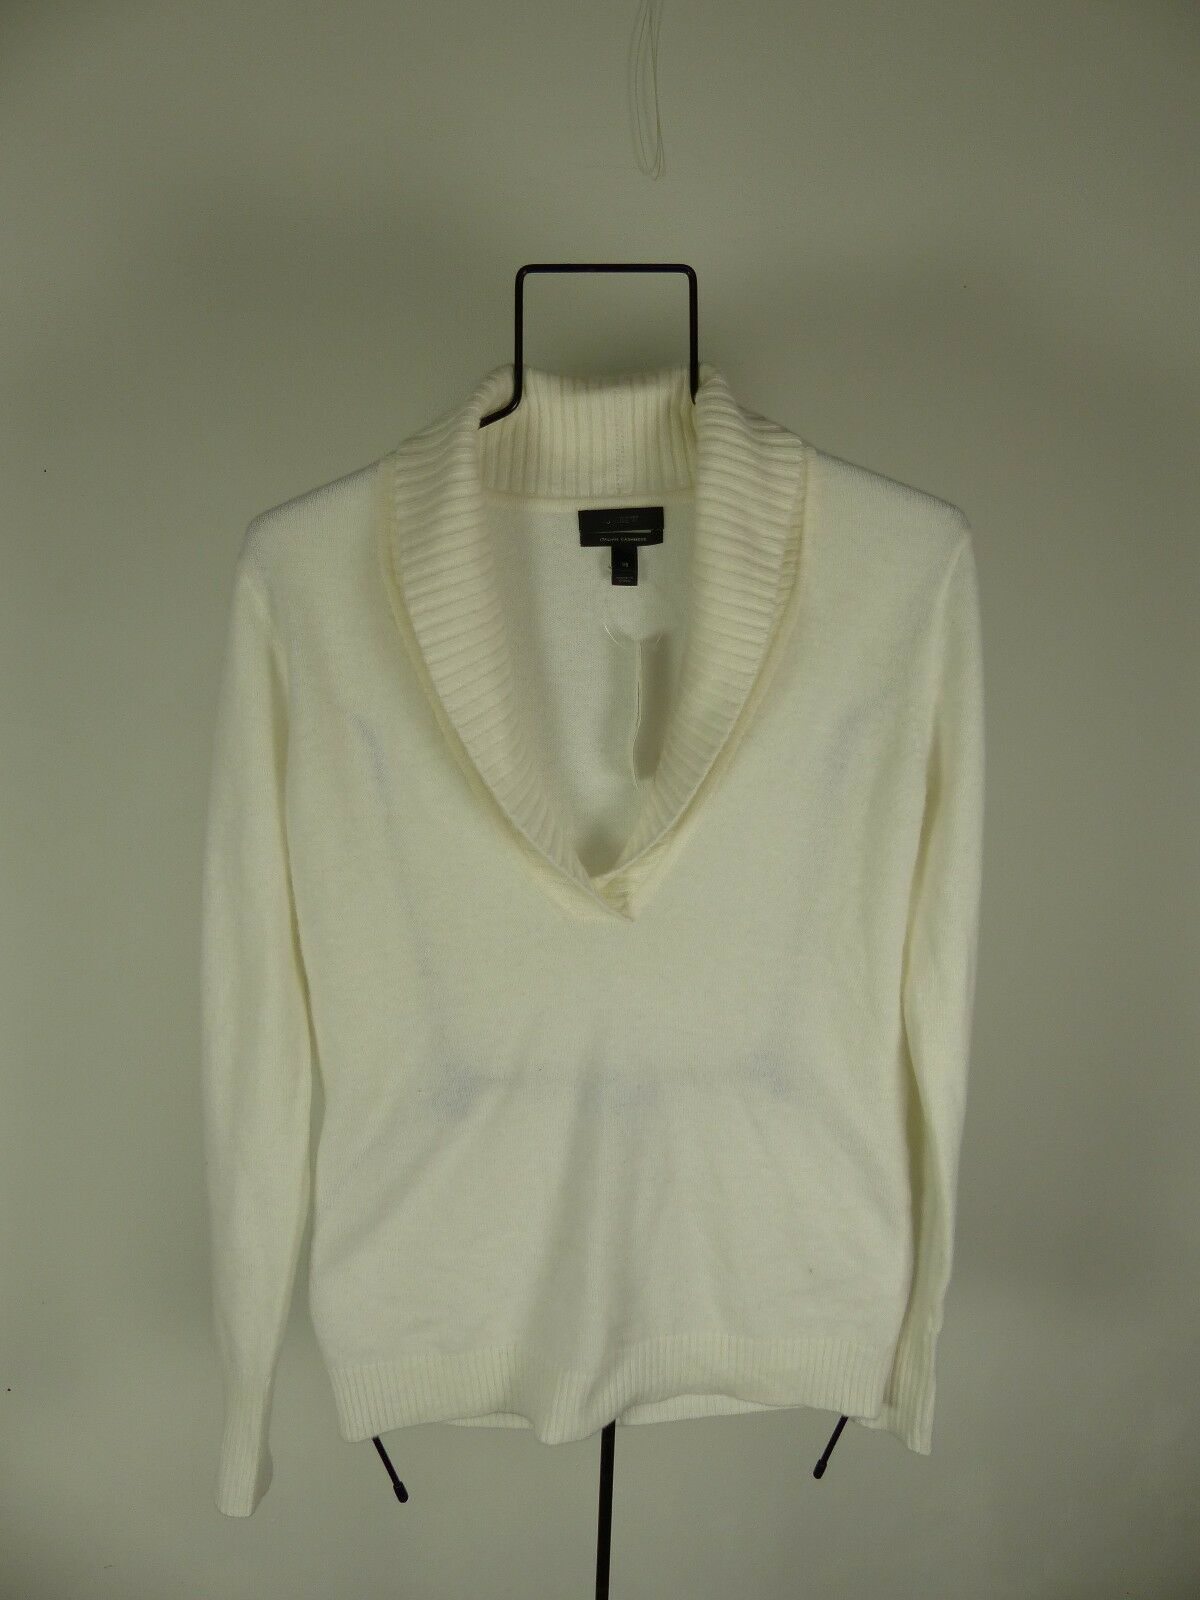 J. Crew COLLECTION CASHMERE SHAWL-COLLAR SWEATER size XS white